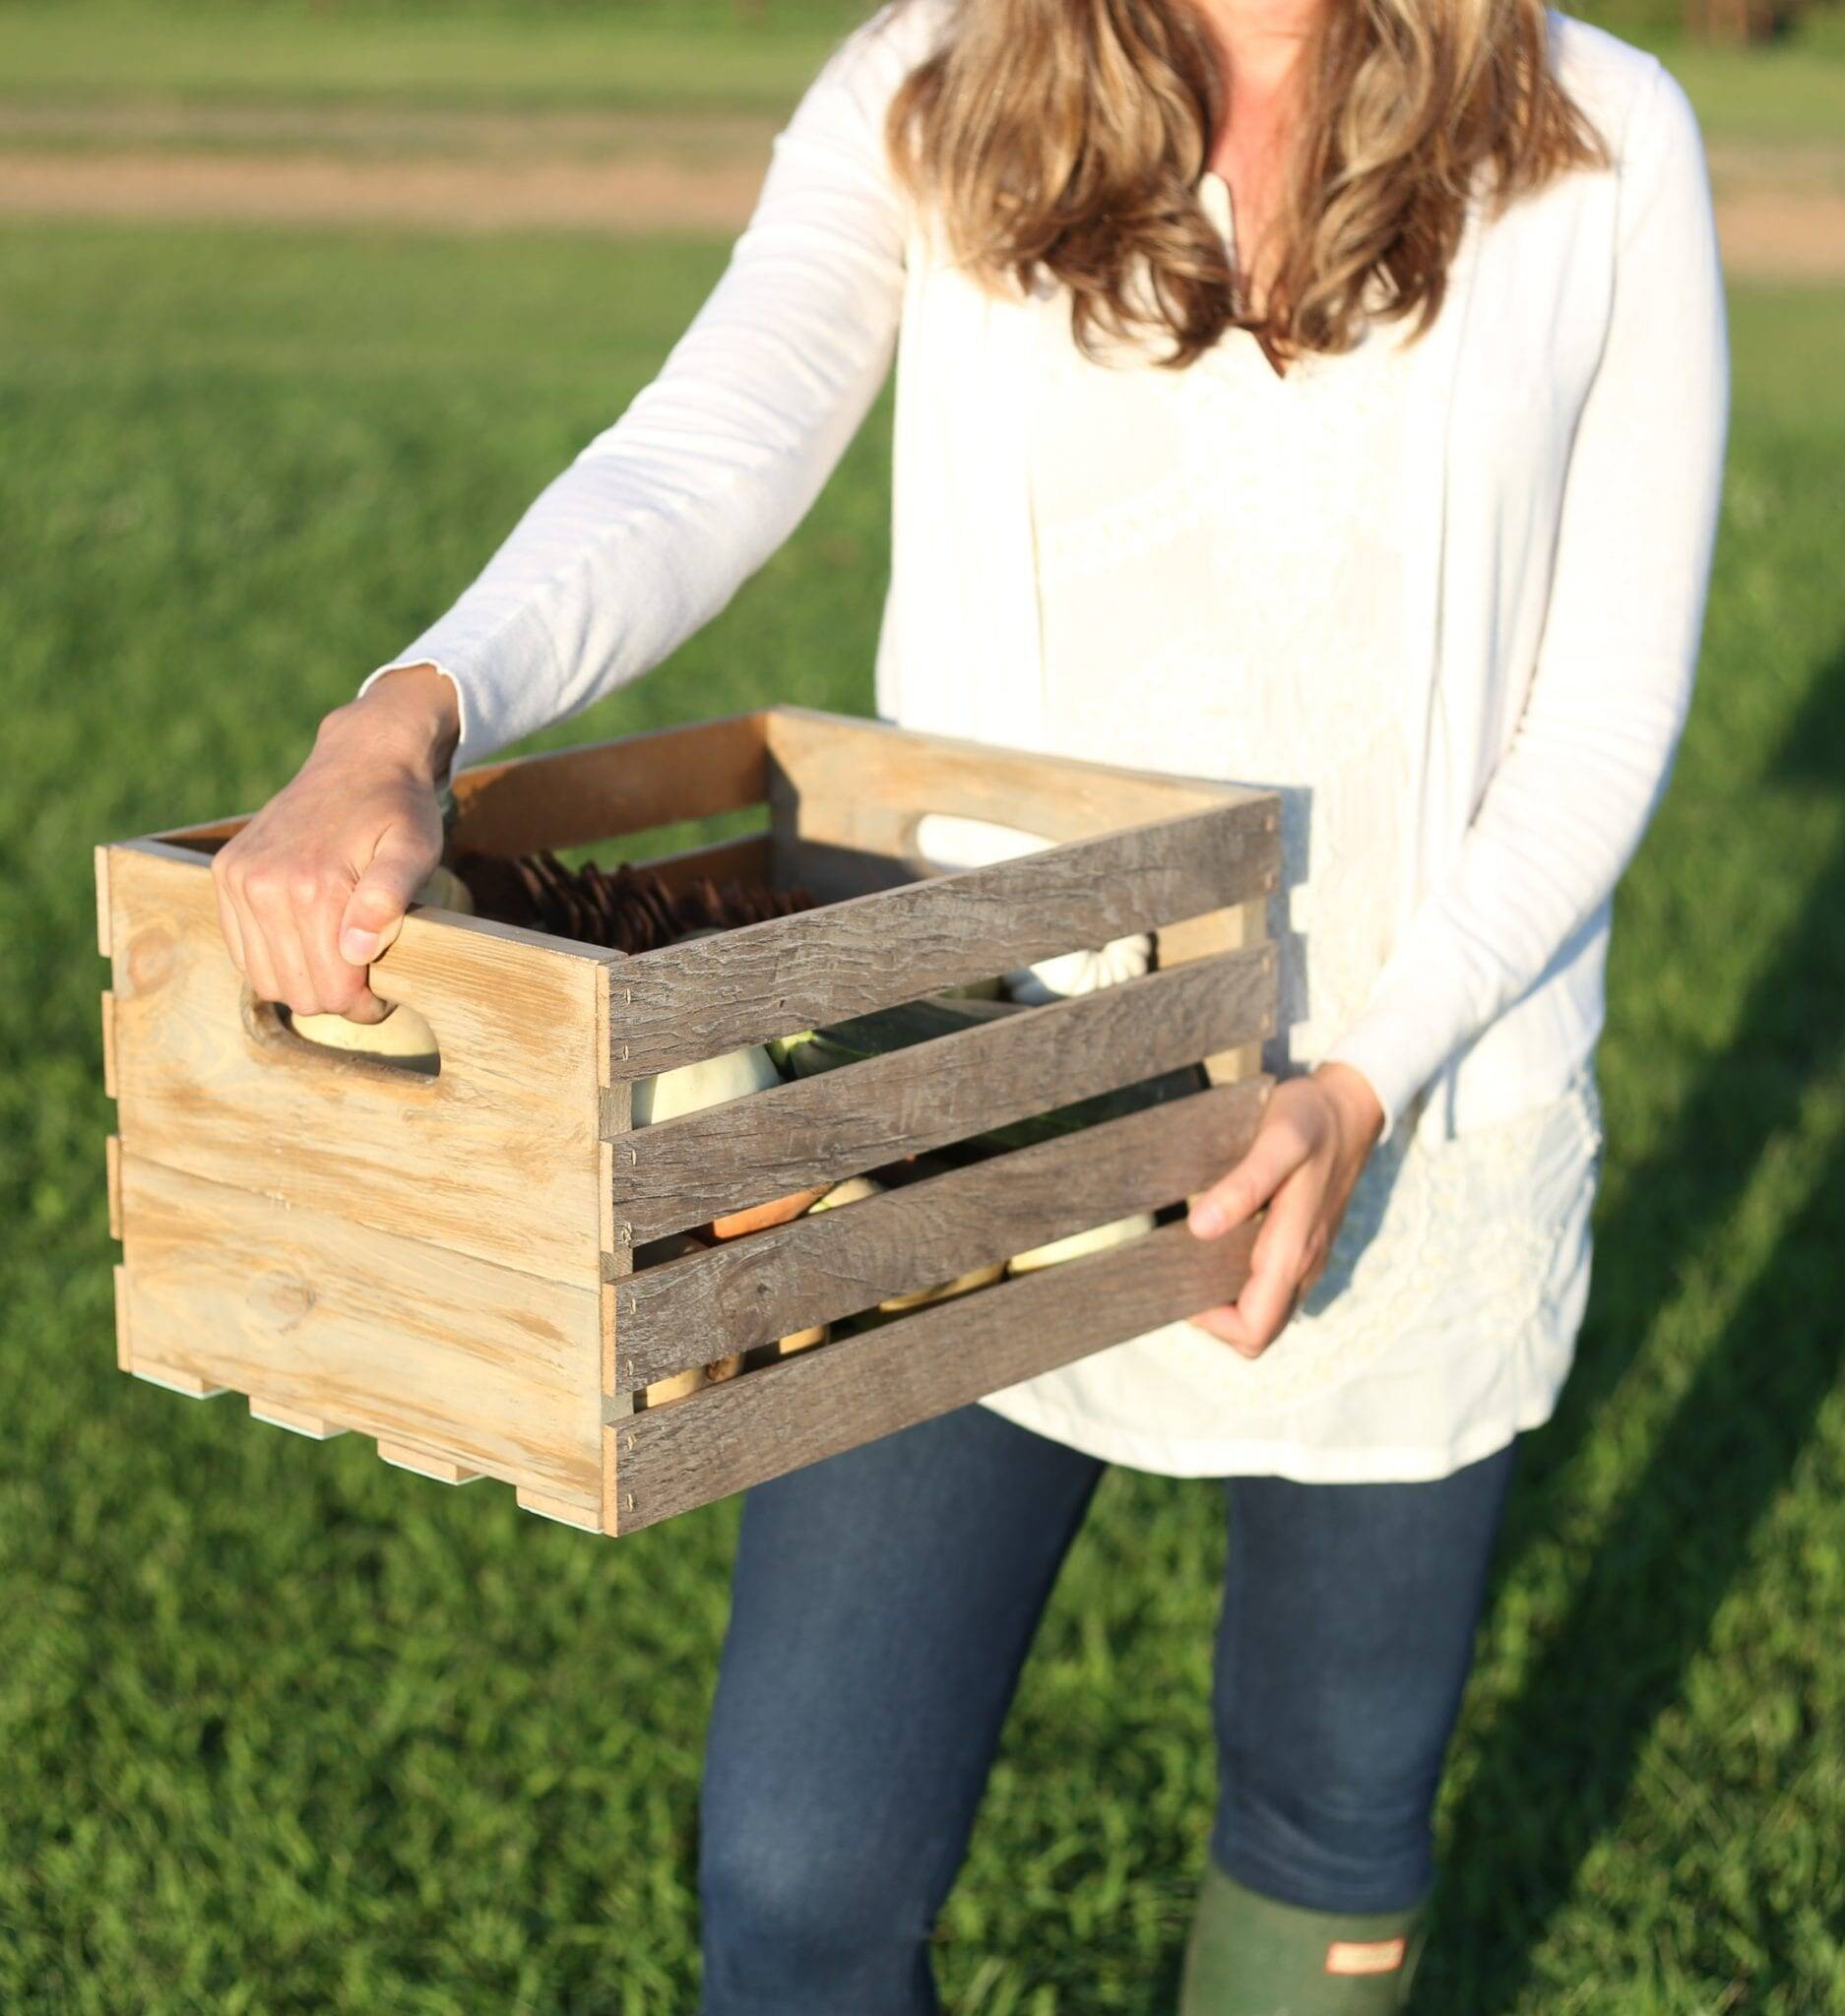 How to Make Crates from Scrap Flooring and Lumber